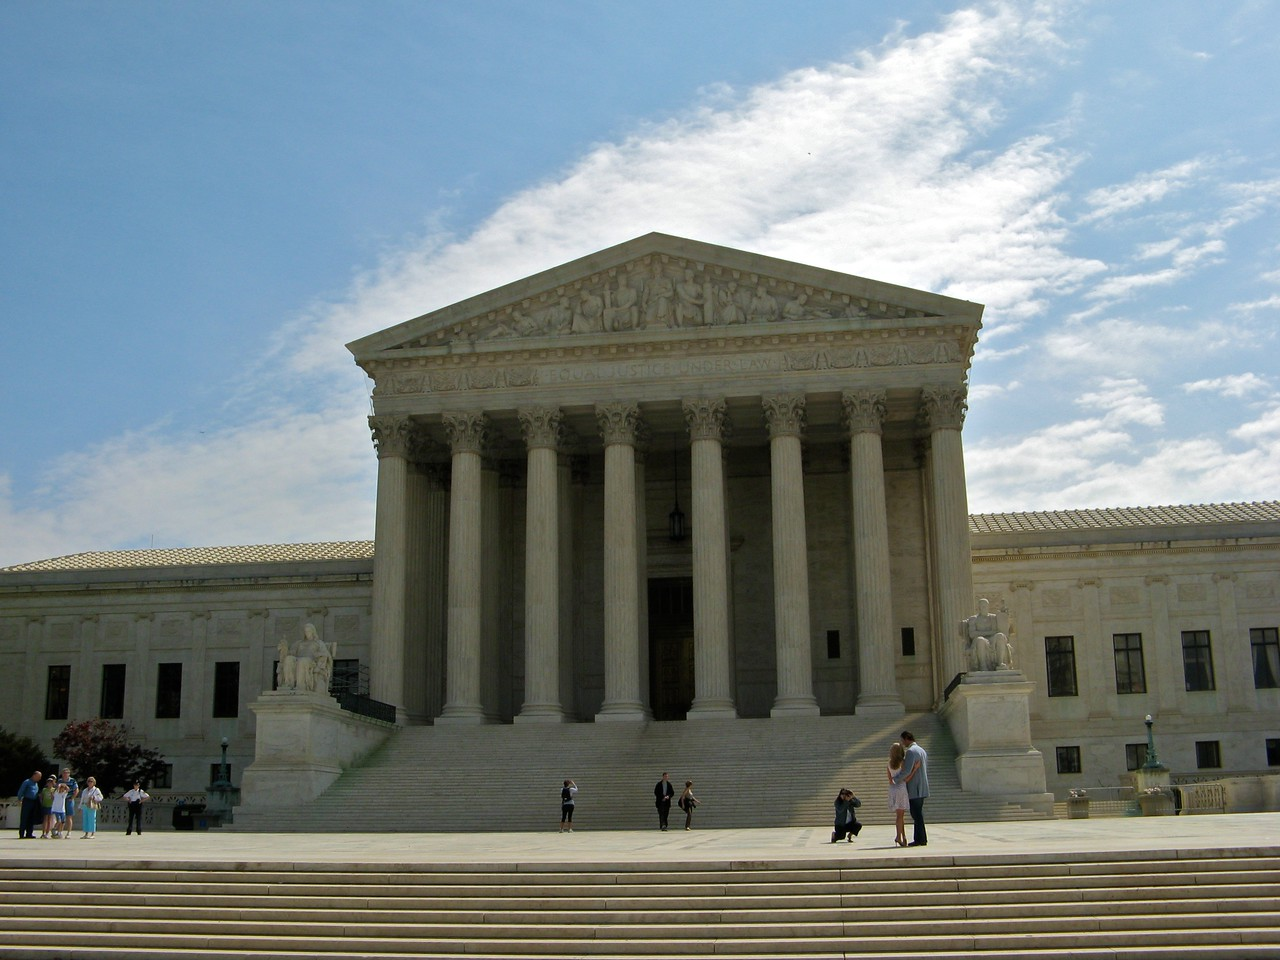 Front of the US Supreme Court building.